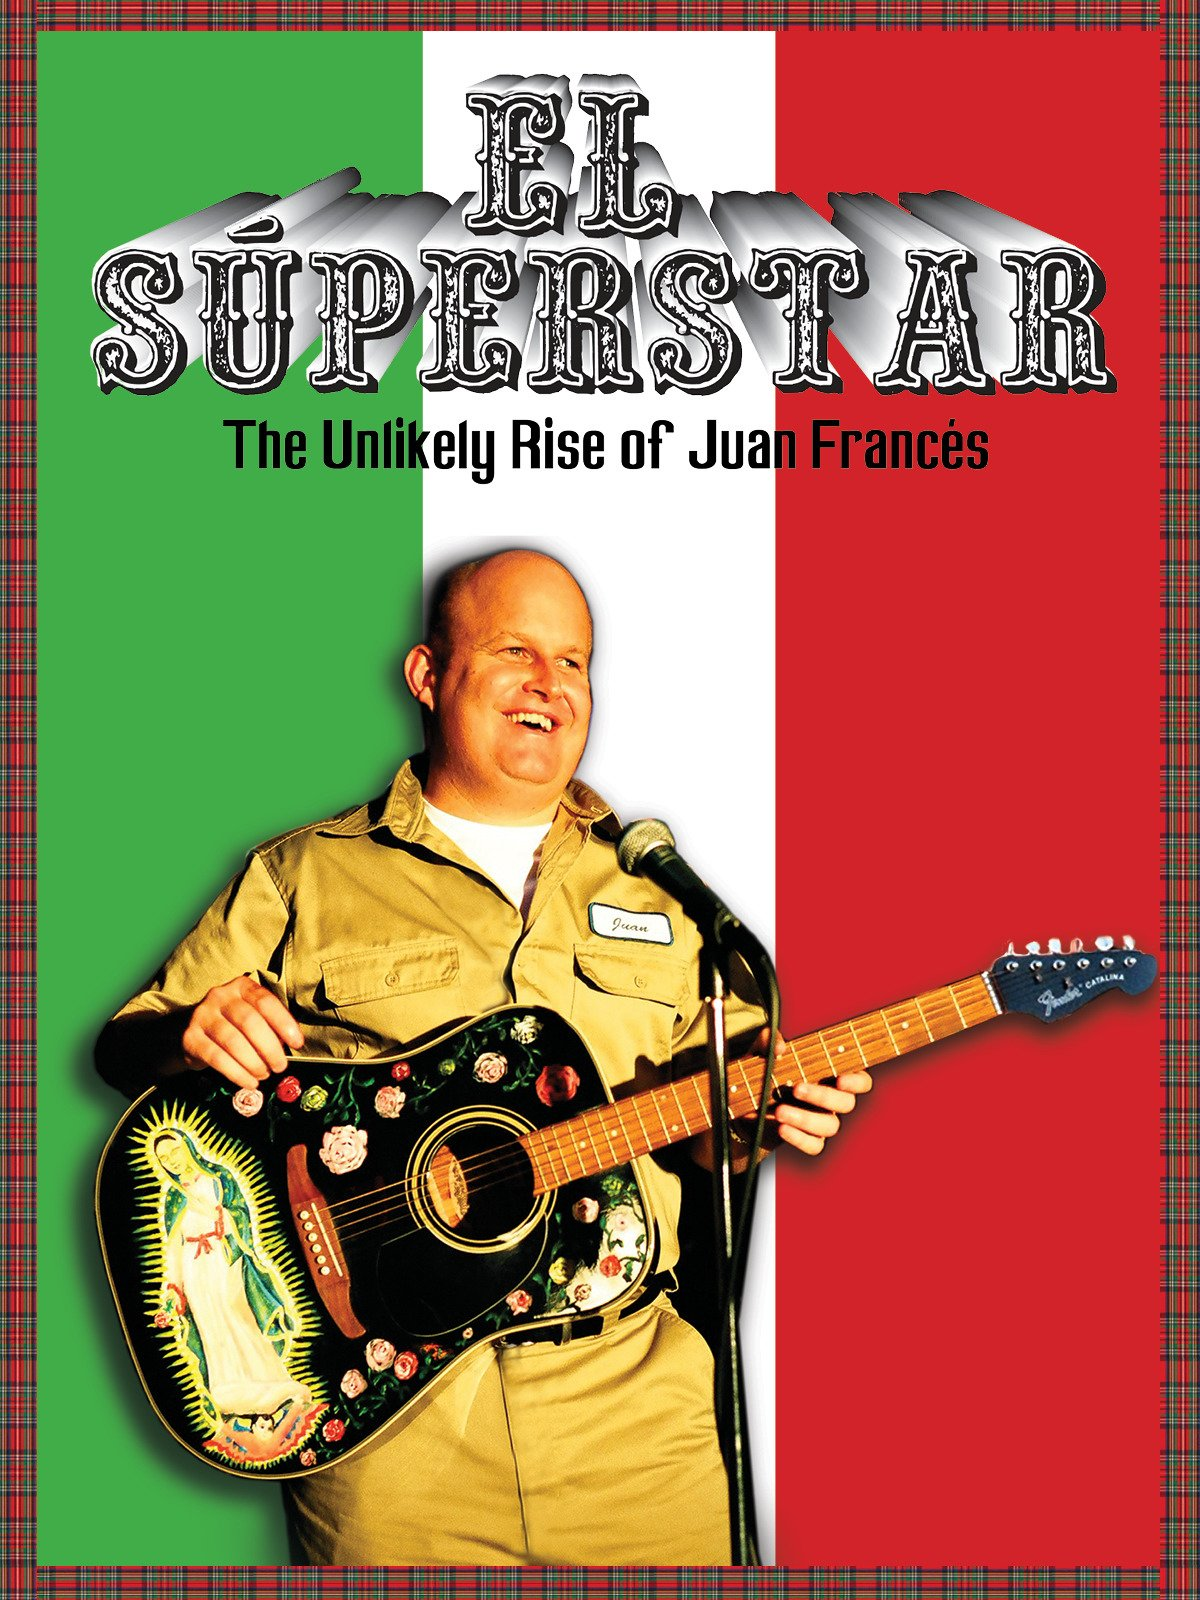 El Superstar: The Unlikely Rise of Juan Frances on Amazon Prime Video UK